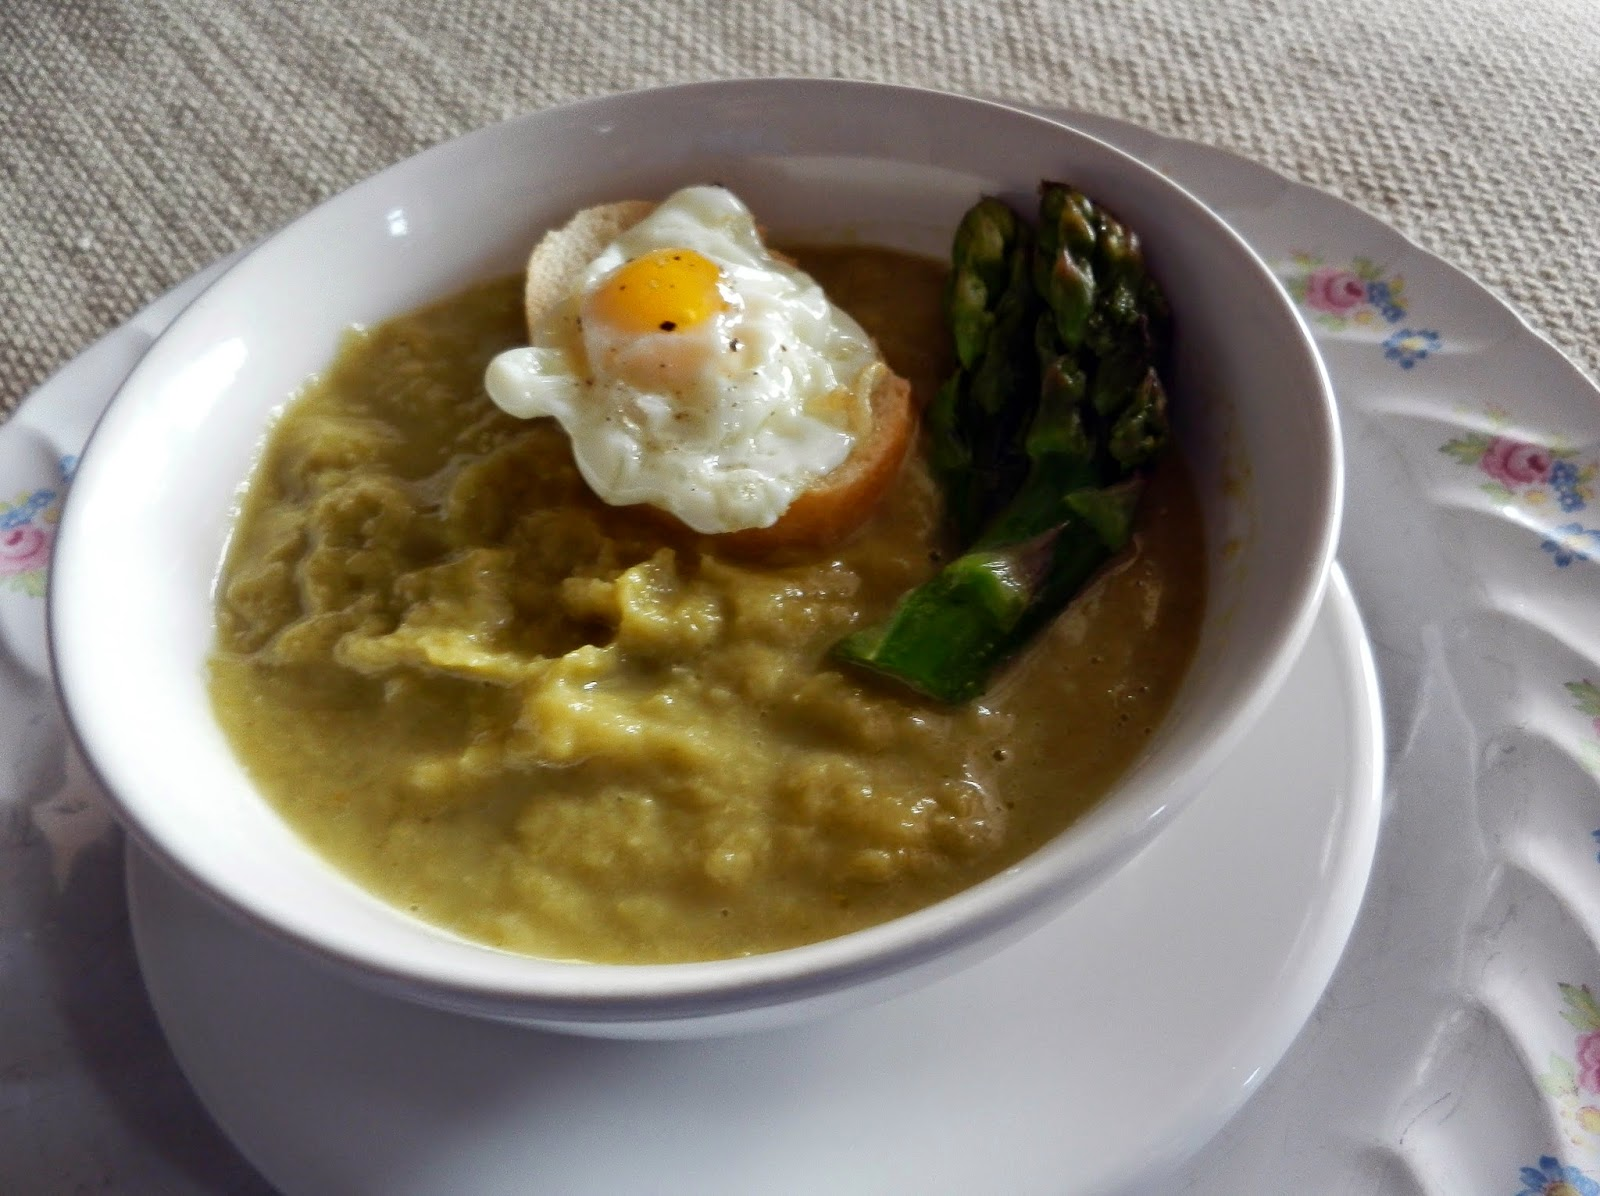 ... and lifestyle - La cucina di Roberta : Asparagus soup with quail egg